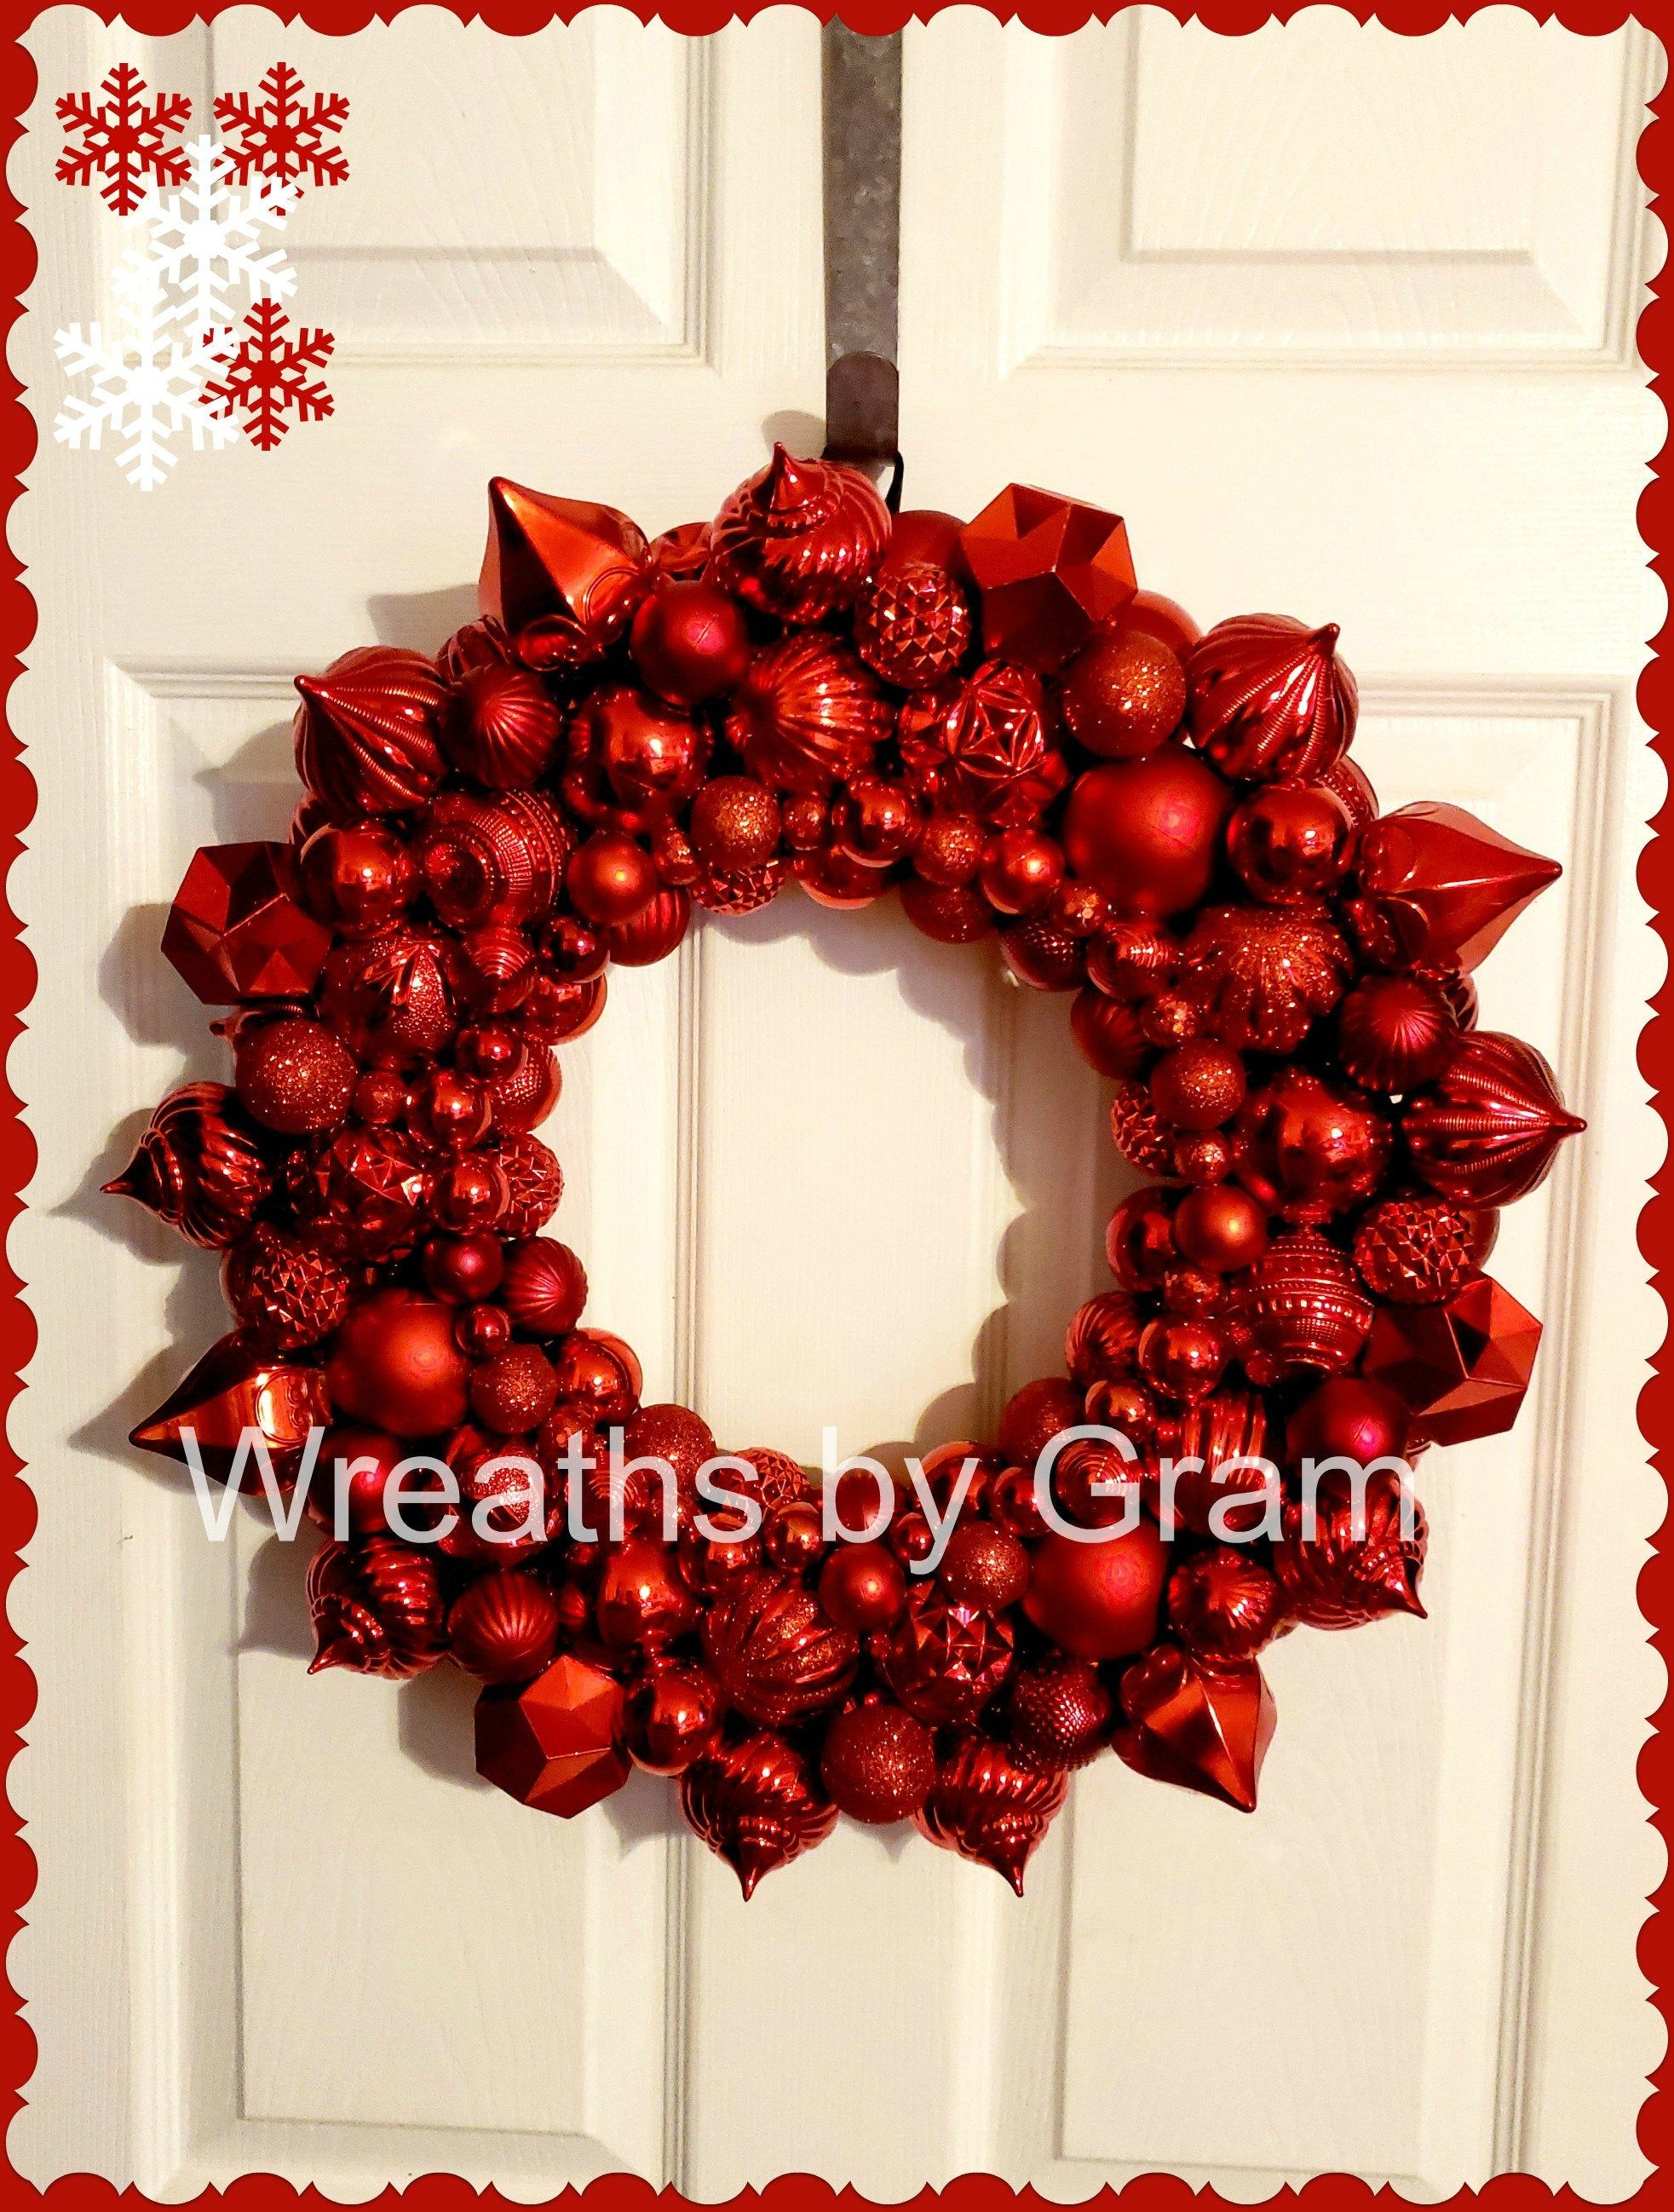 19 Red Ornament Wreath Christmas Wreath Red Ornaments Red Christmas Decor Christmas Wreaths